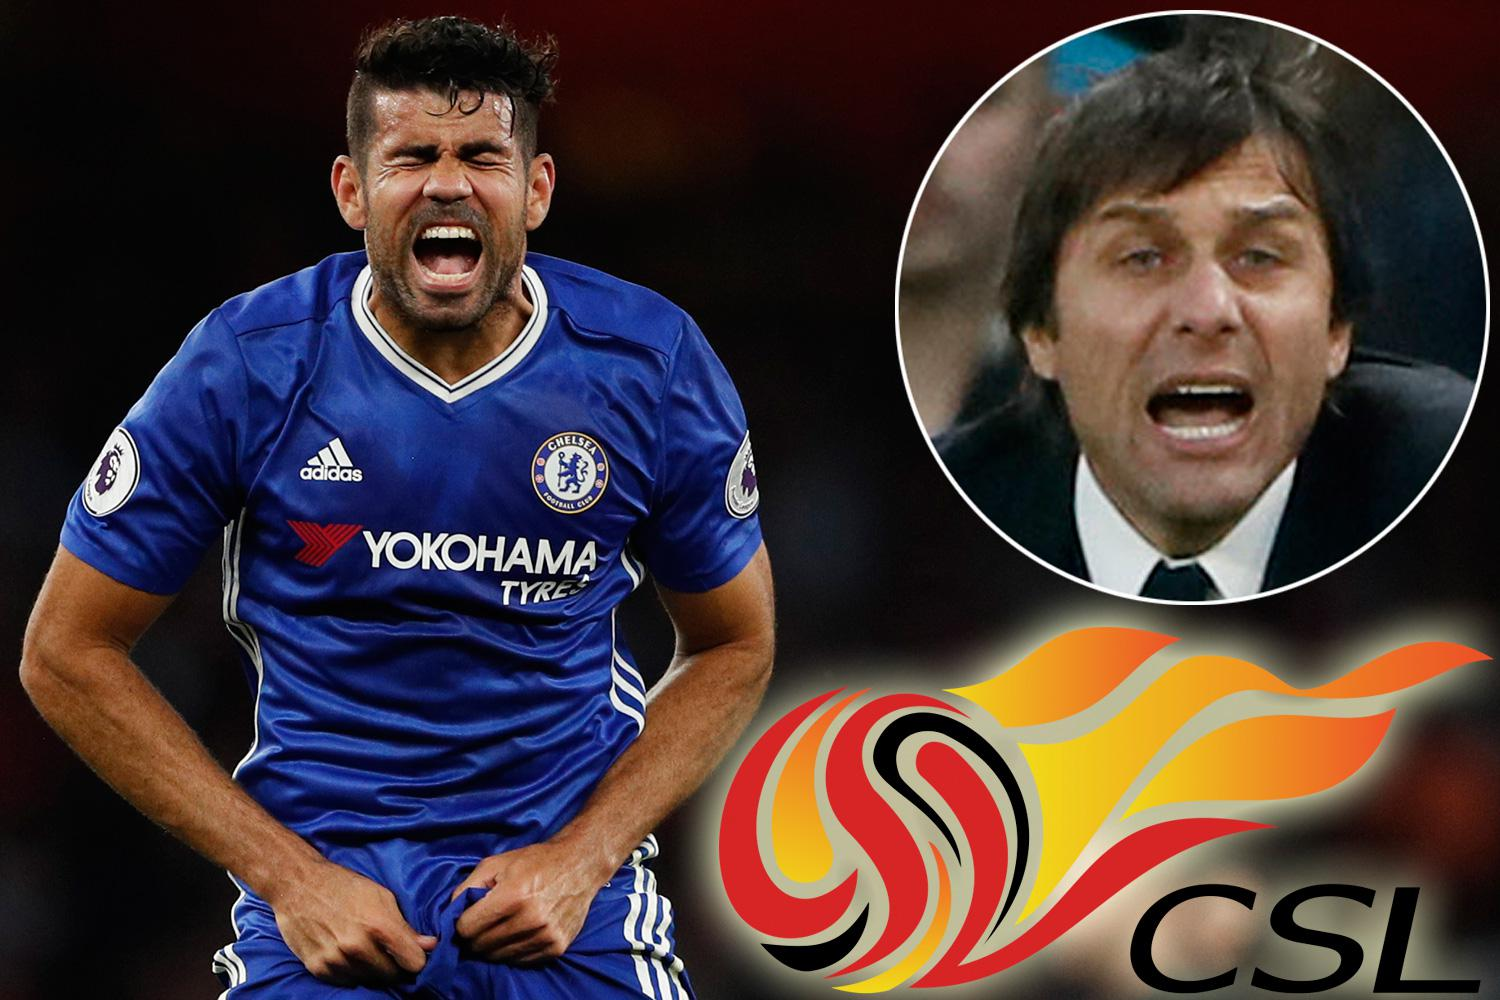 Chelsea supporters will never forgive Diego Costa if he cheques